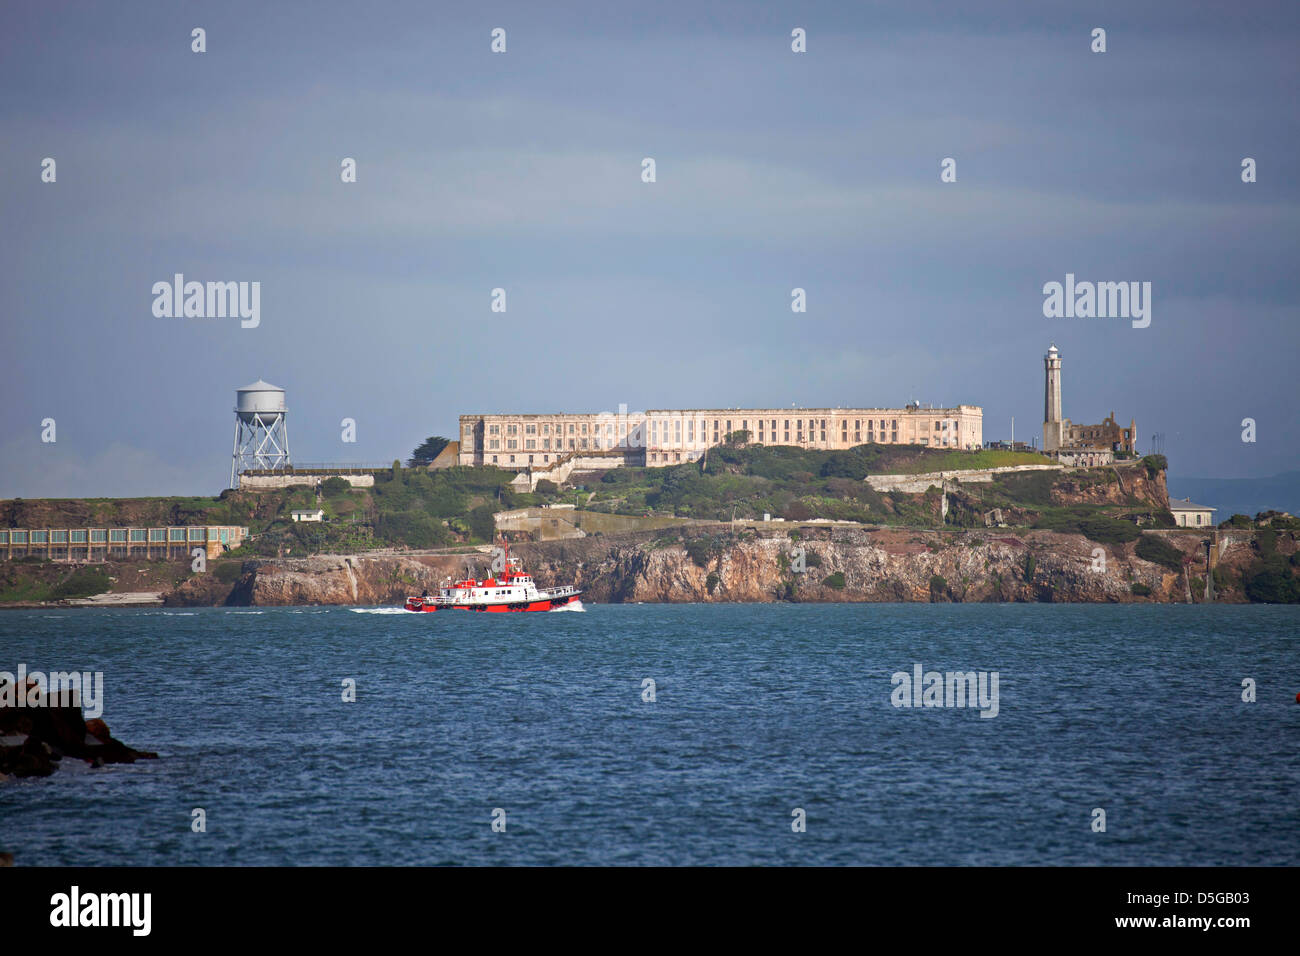 Alcatraz Island, San Francisco, California, United States of America, USA - Stock Image